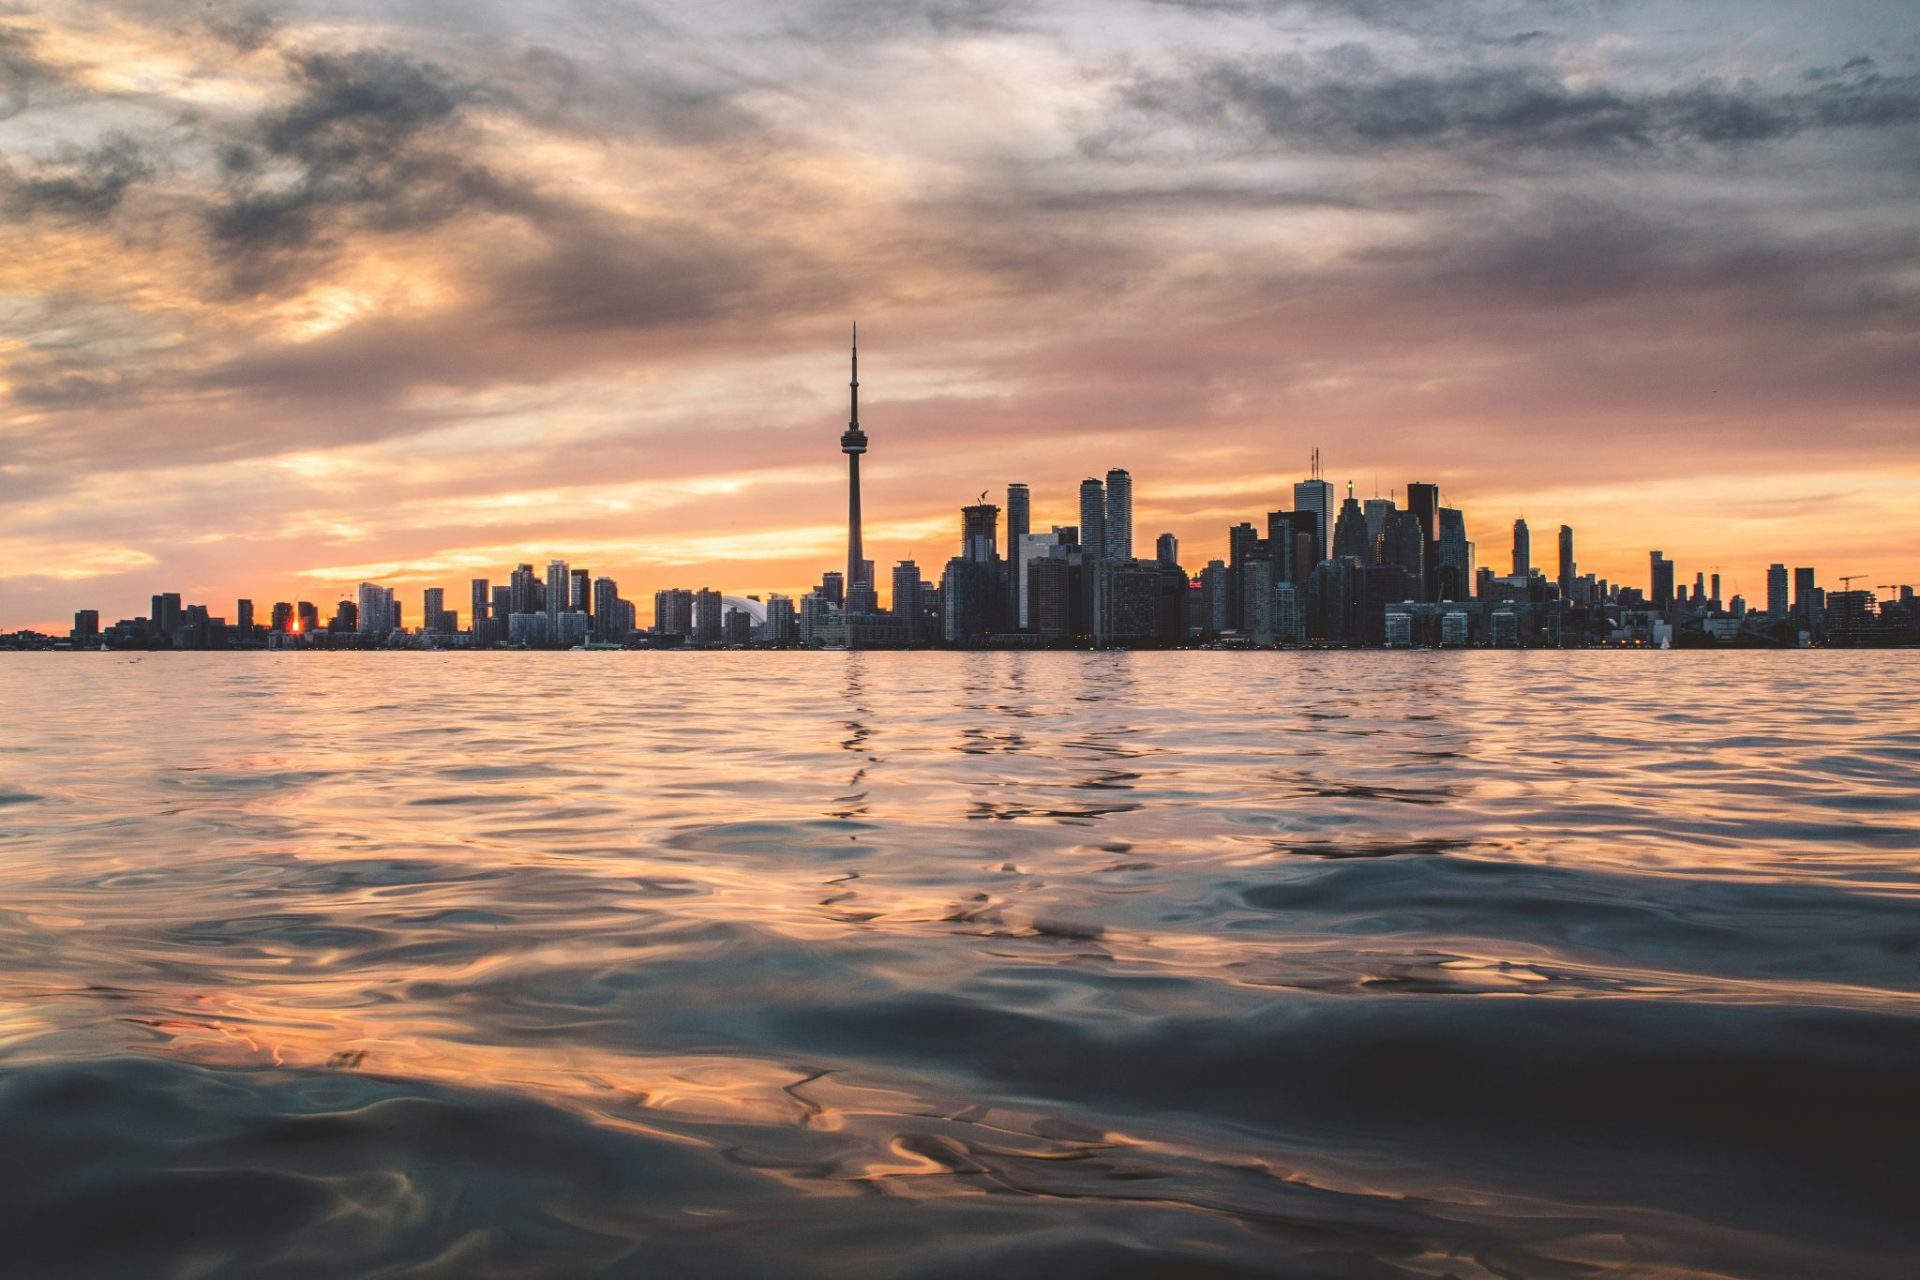 What Different World Cultures Thrive in Toronto?